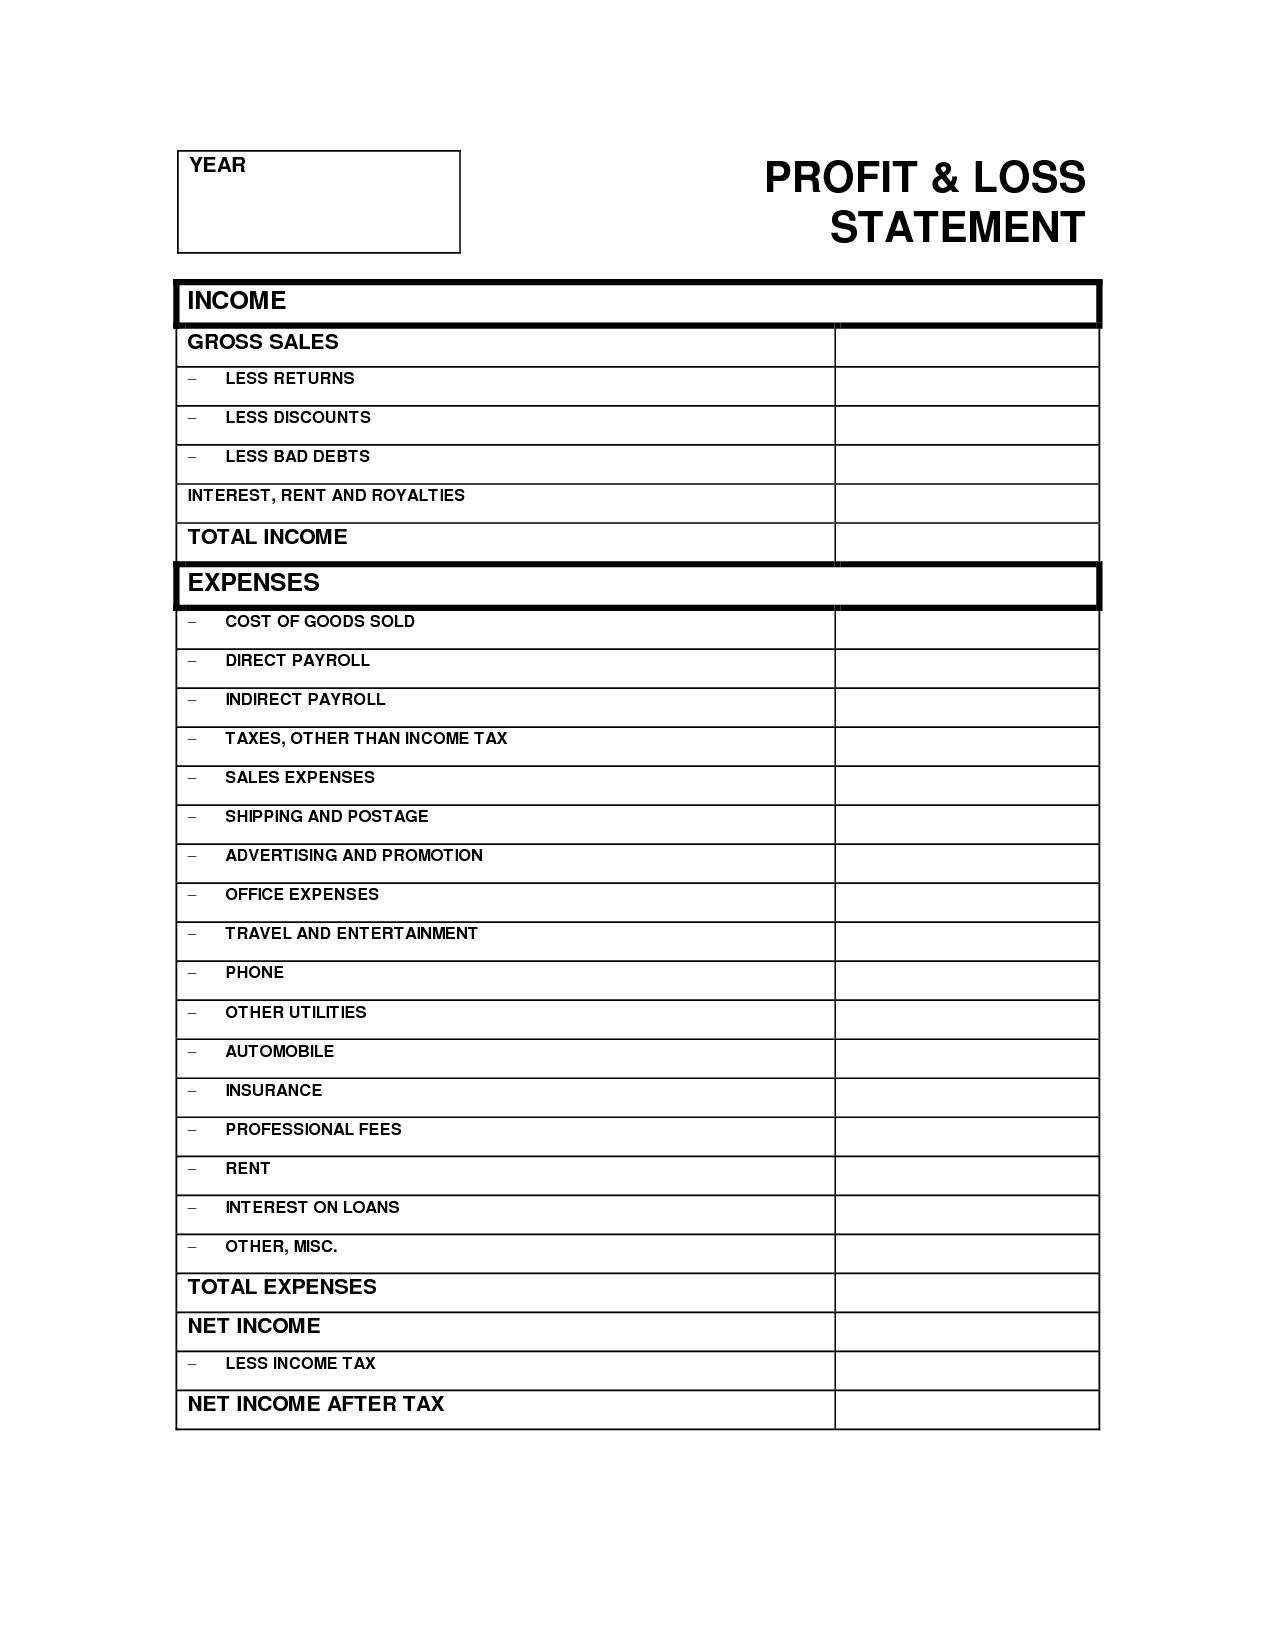 Expense Reports Free Templates 1 1